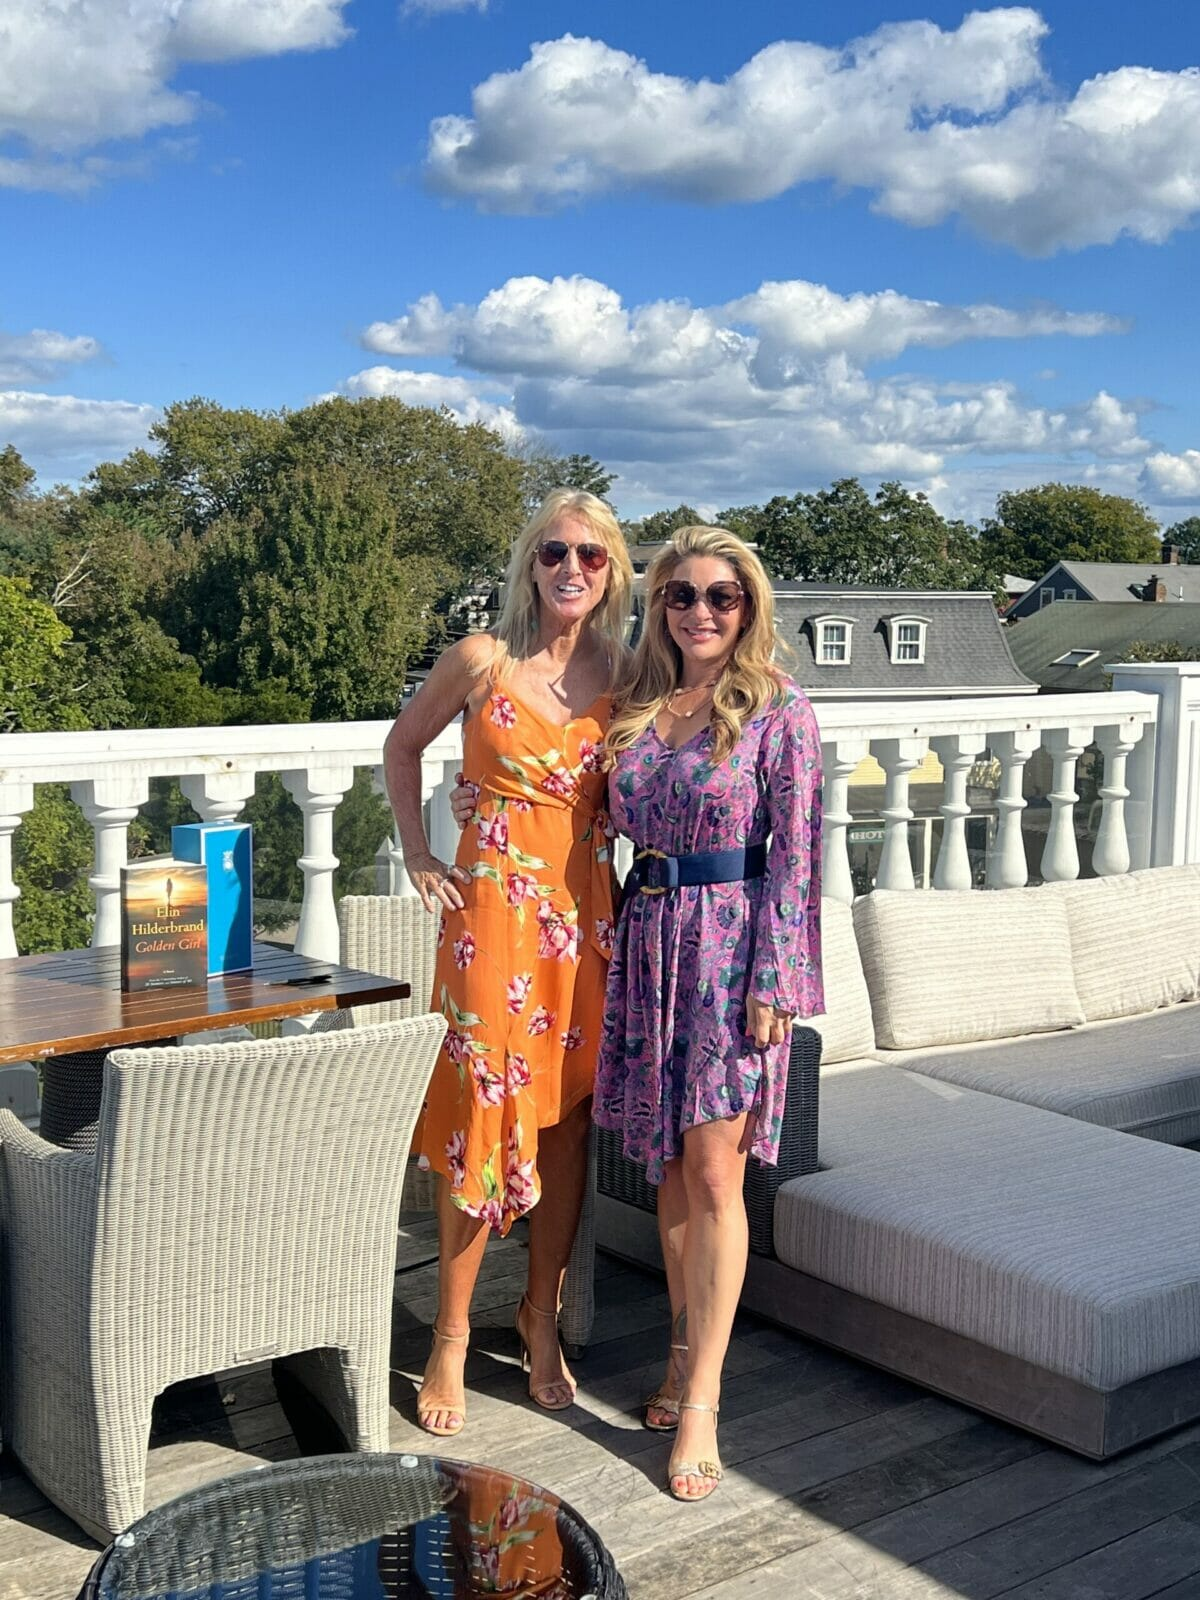 Newport Ladies Book Club with Elin Hilderbrand and Kylie McCollough on book Golden Girl